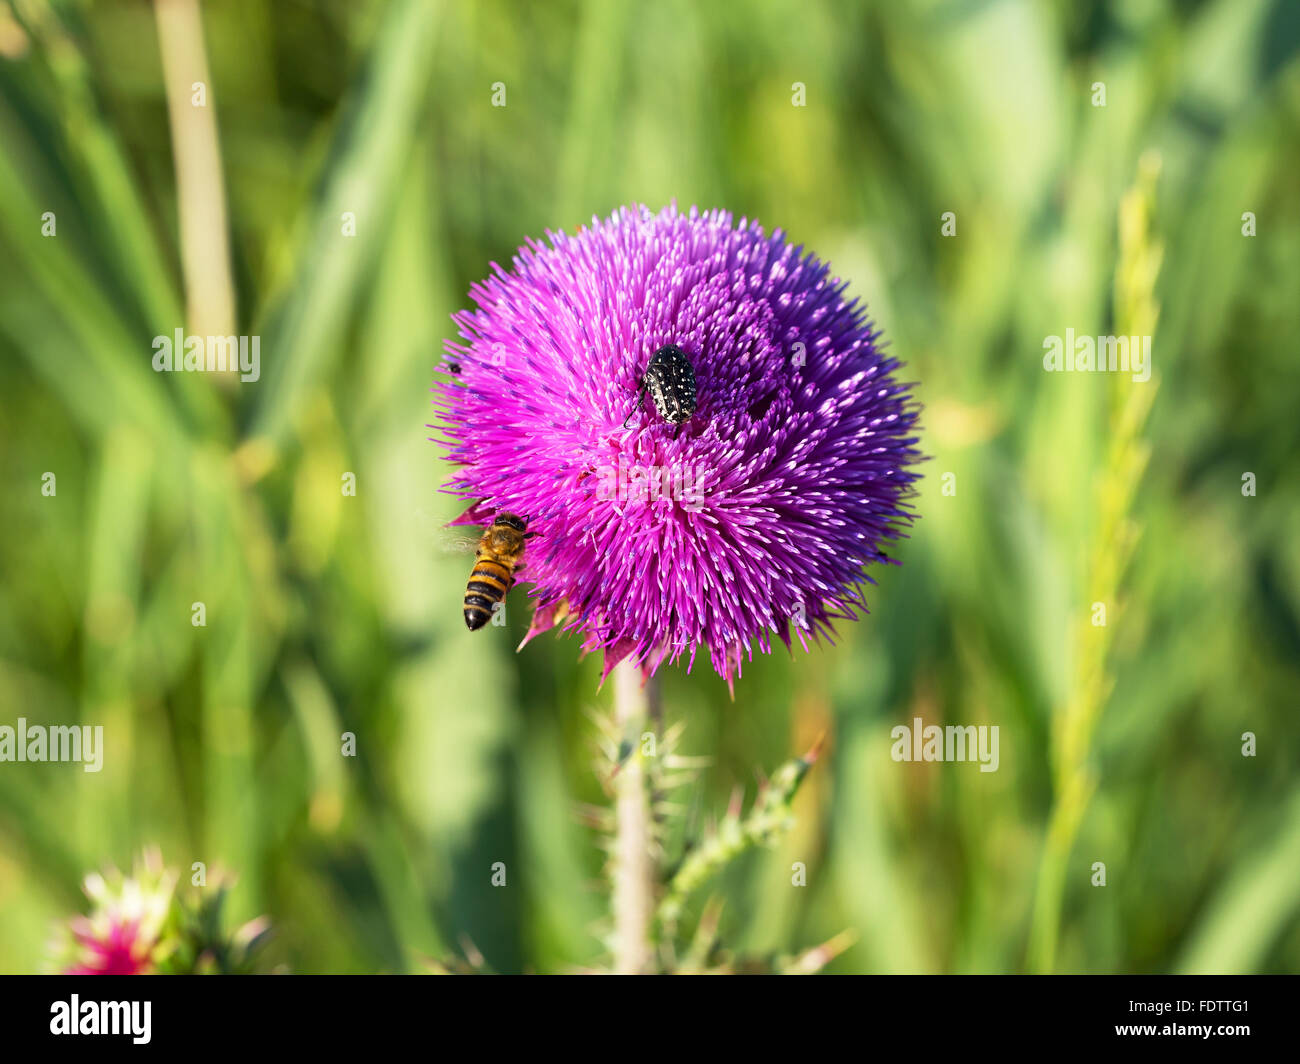 Beautiful bright flower thistle. Bees pollinate the flowers, collect nectar and pollen from flowers. Selective focus, - Stock Image